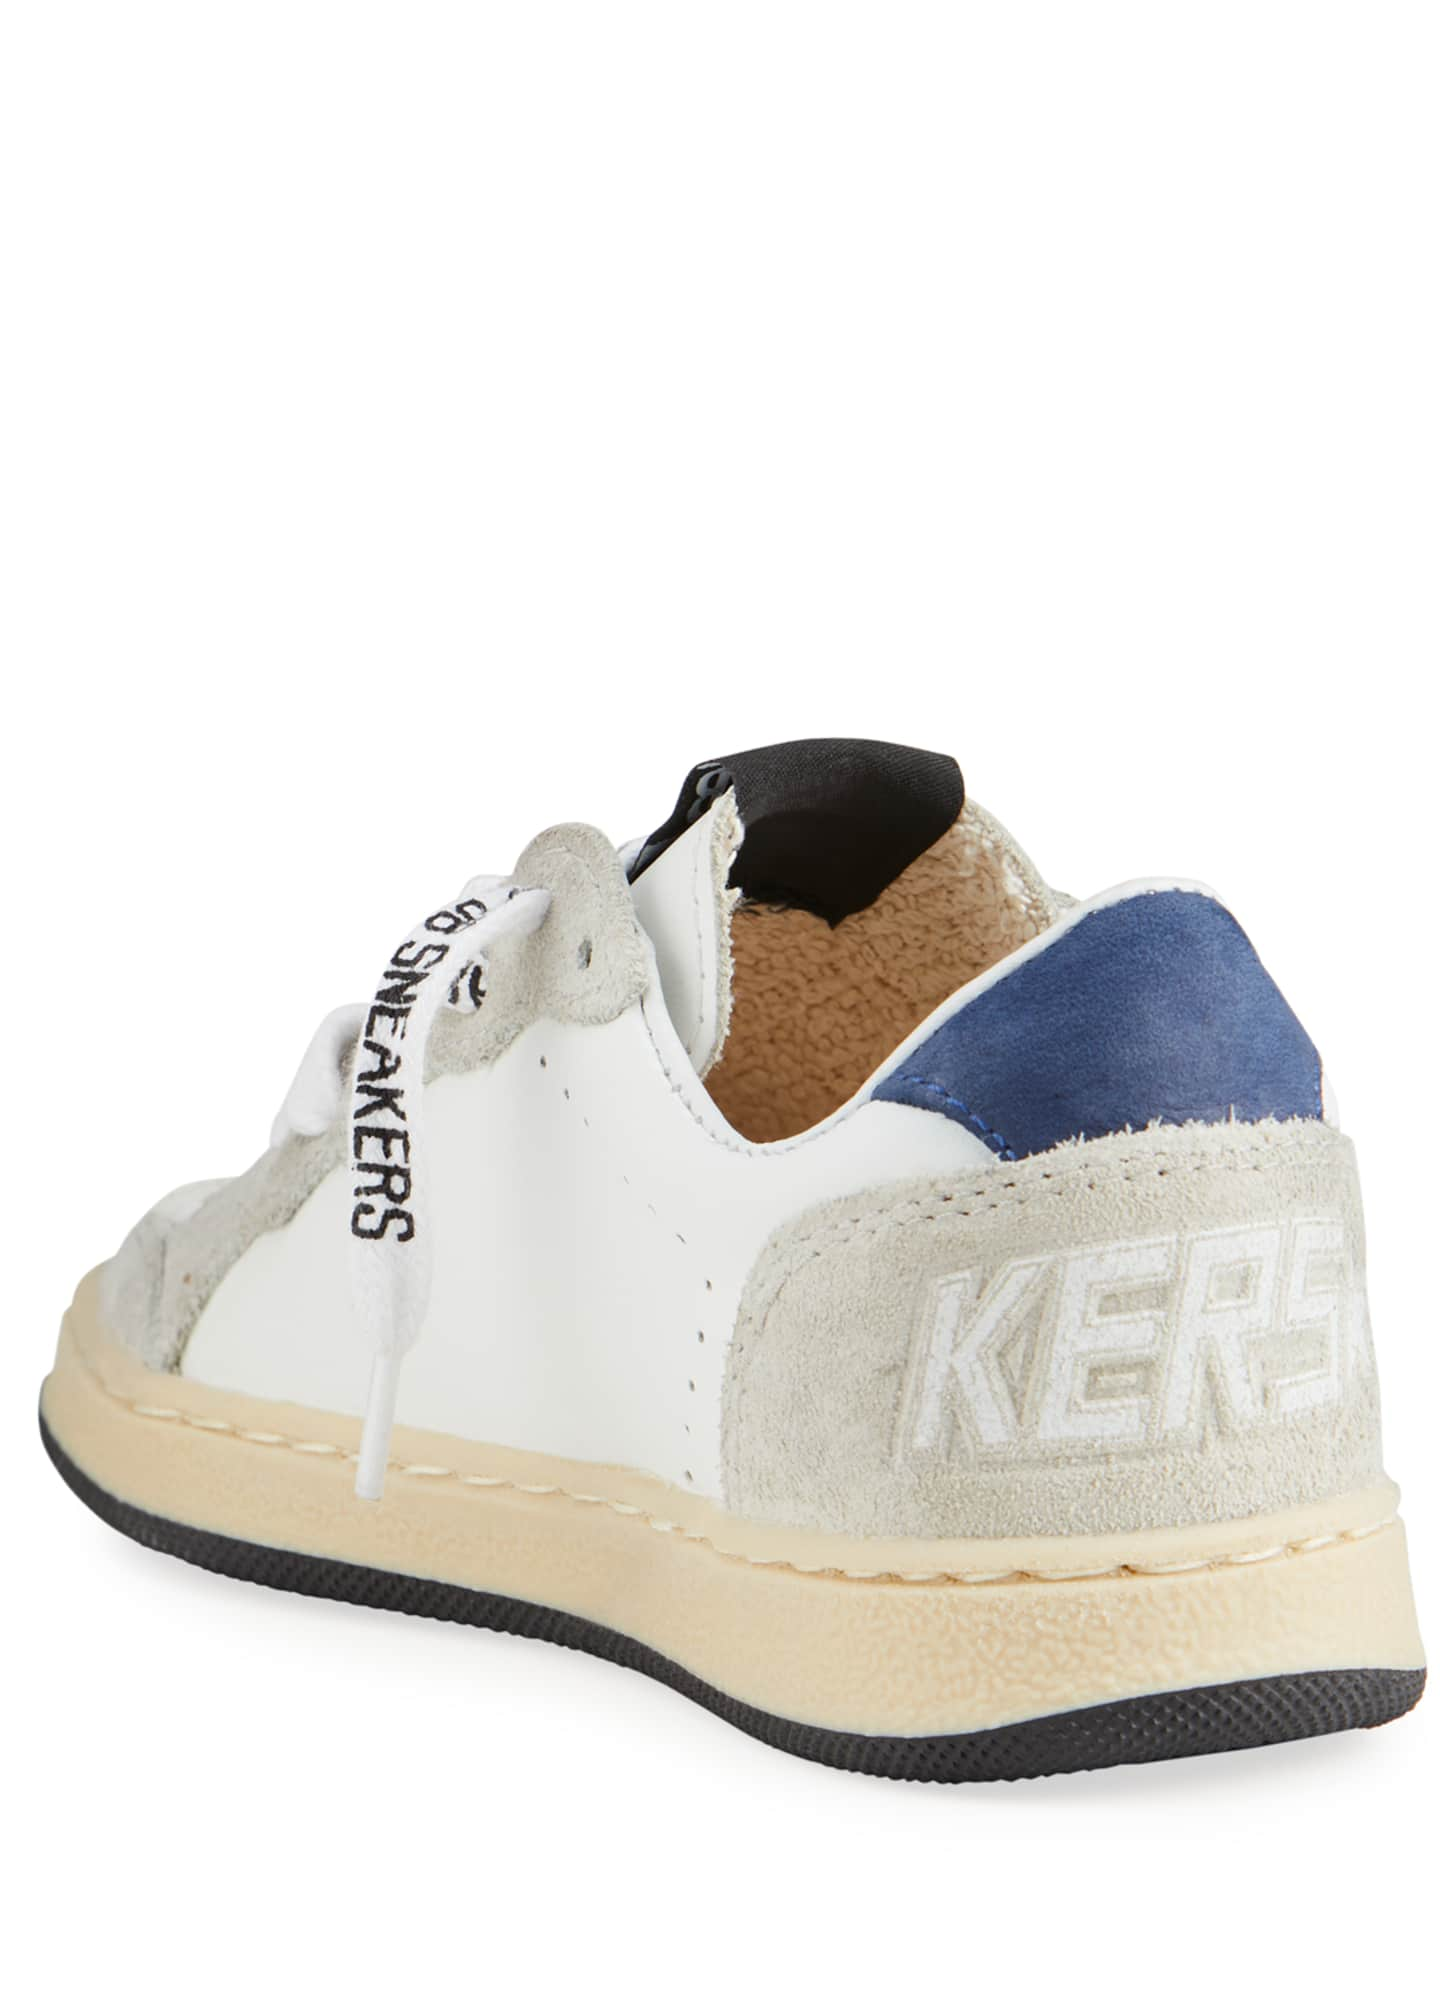 Image 4 of 4: Ball Star Leather Low-Top Sneakers, Baby/Toddler